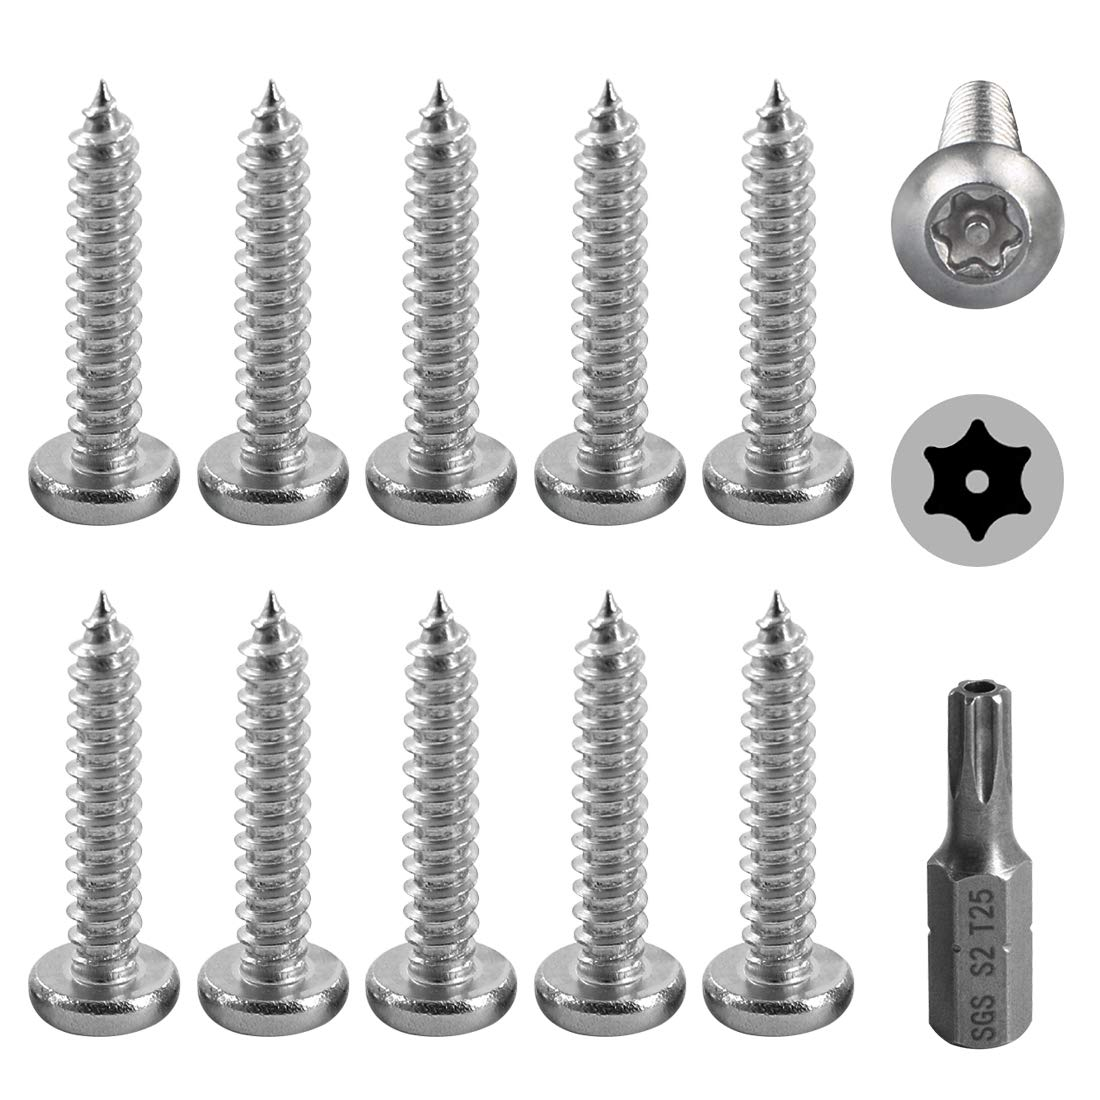 """Hilitchi 50 Pcs #10 x 5//8/"""" Stainless Steel Button Head Torx Sheet Metal Screws Security Silver Screws Anti-Theft Tamper Proof with Bit T25"""